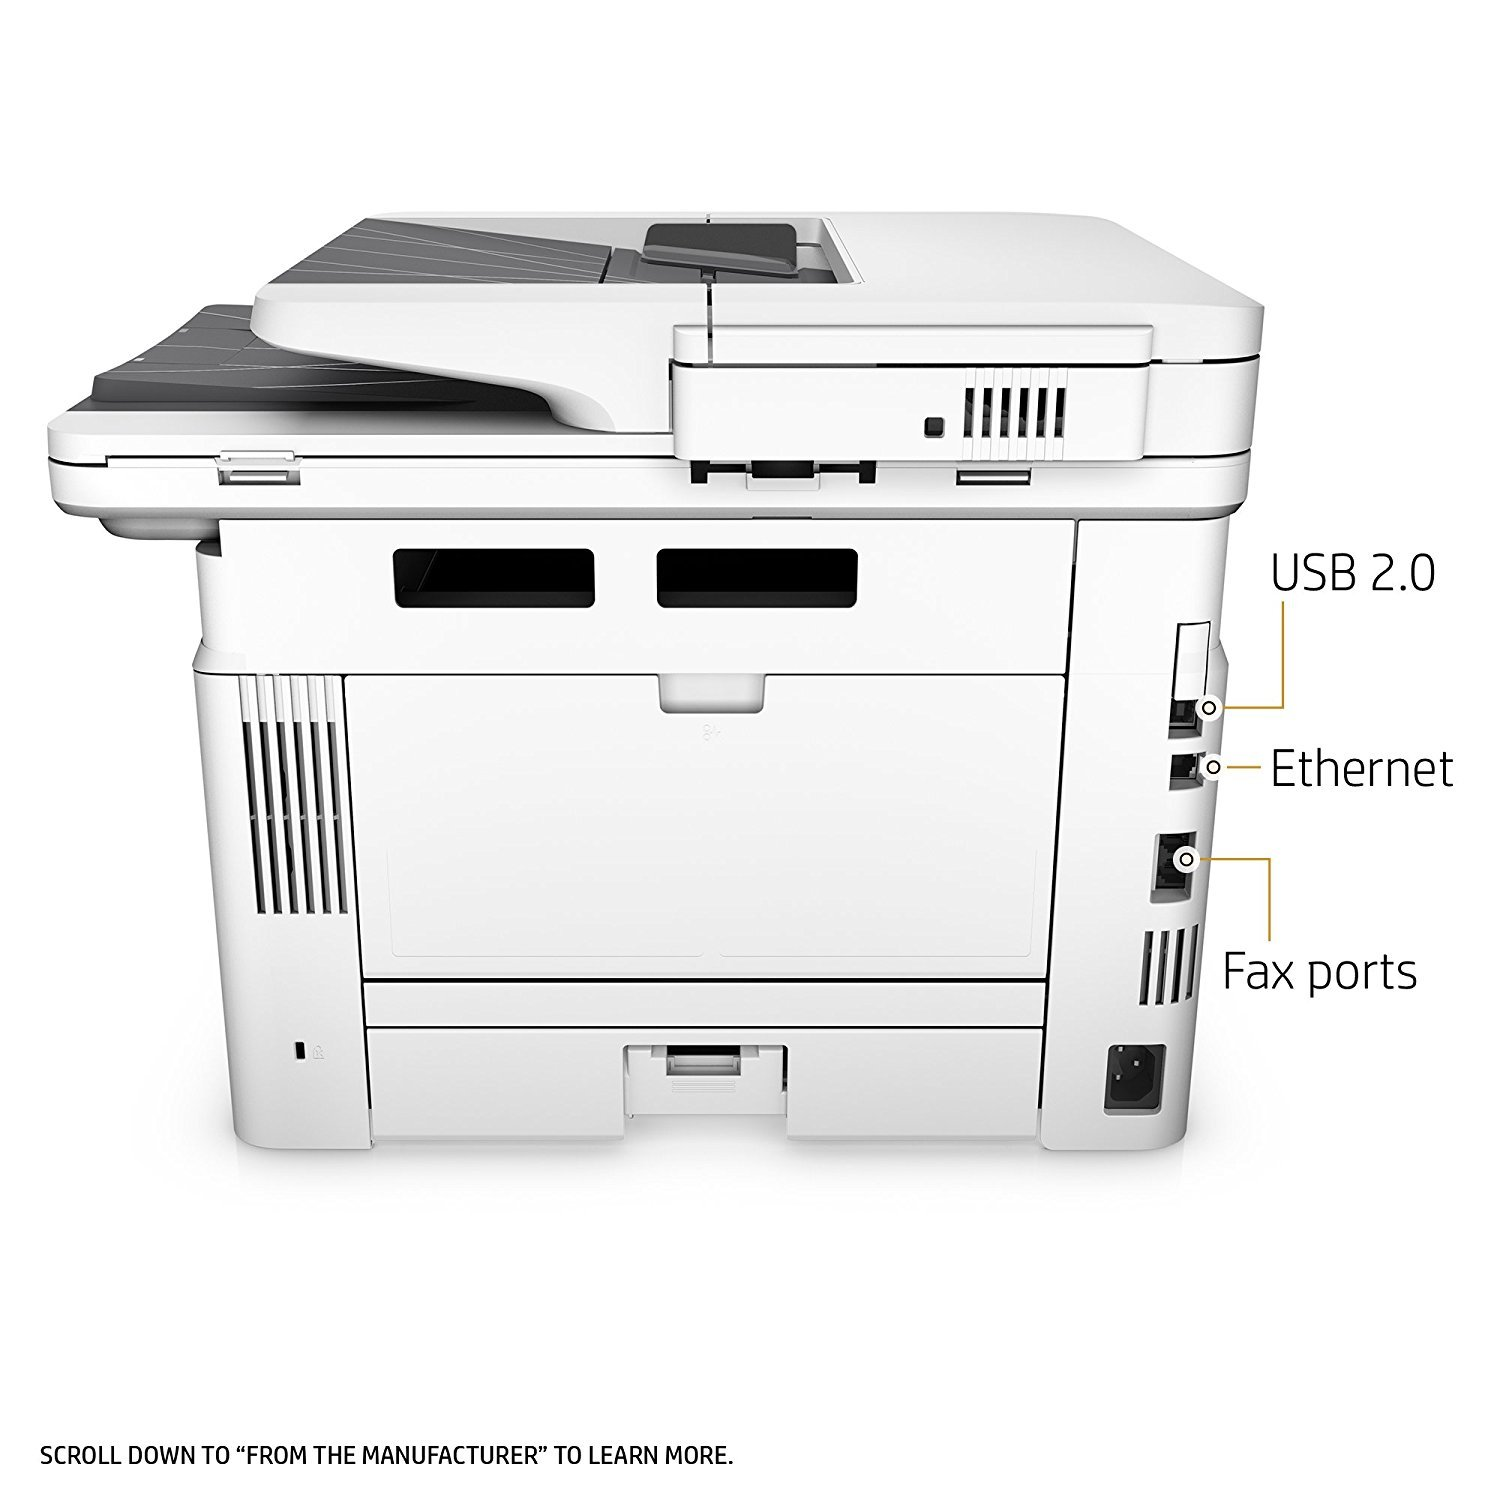 HP LaserJet Pro M426fdw All-in-One Wireless Laser Printer with Double-Sided Printing, Amazon Dash Replenishment ready (F6W15A) by HP (Image #6)